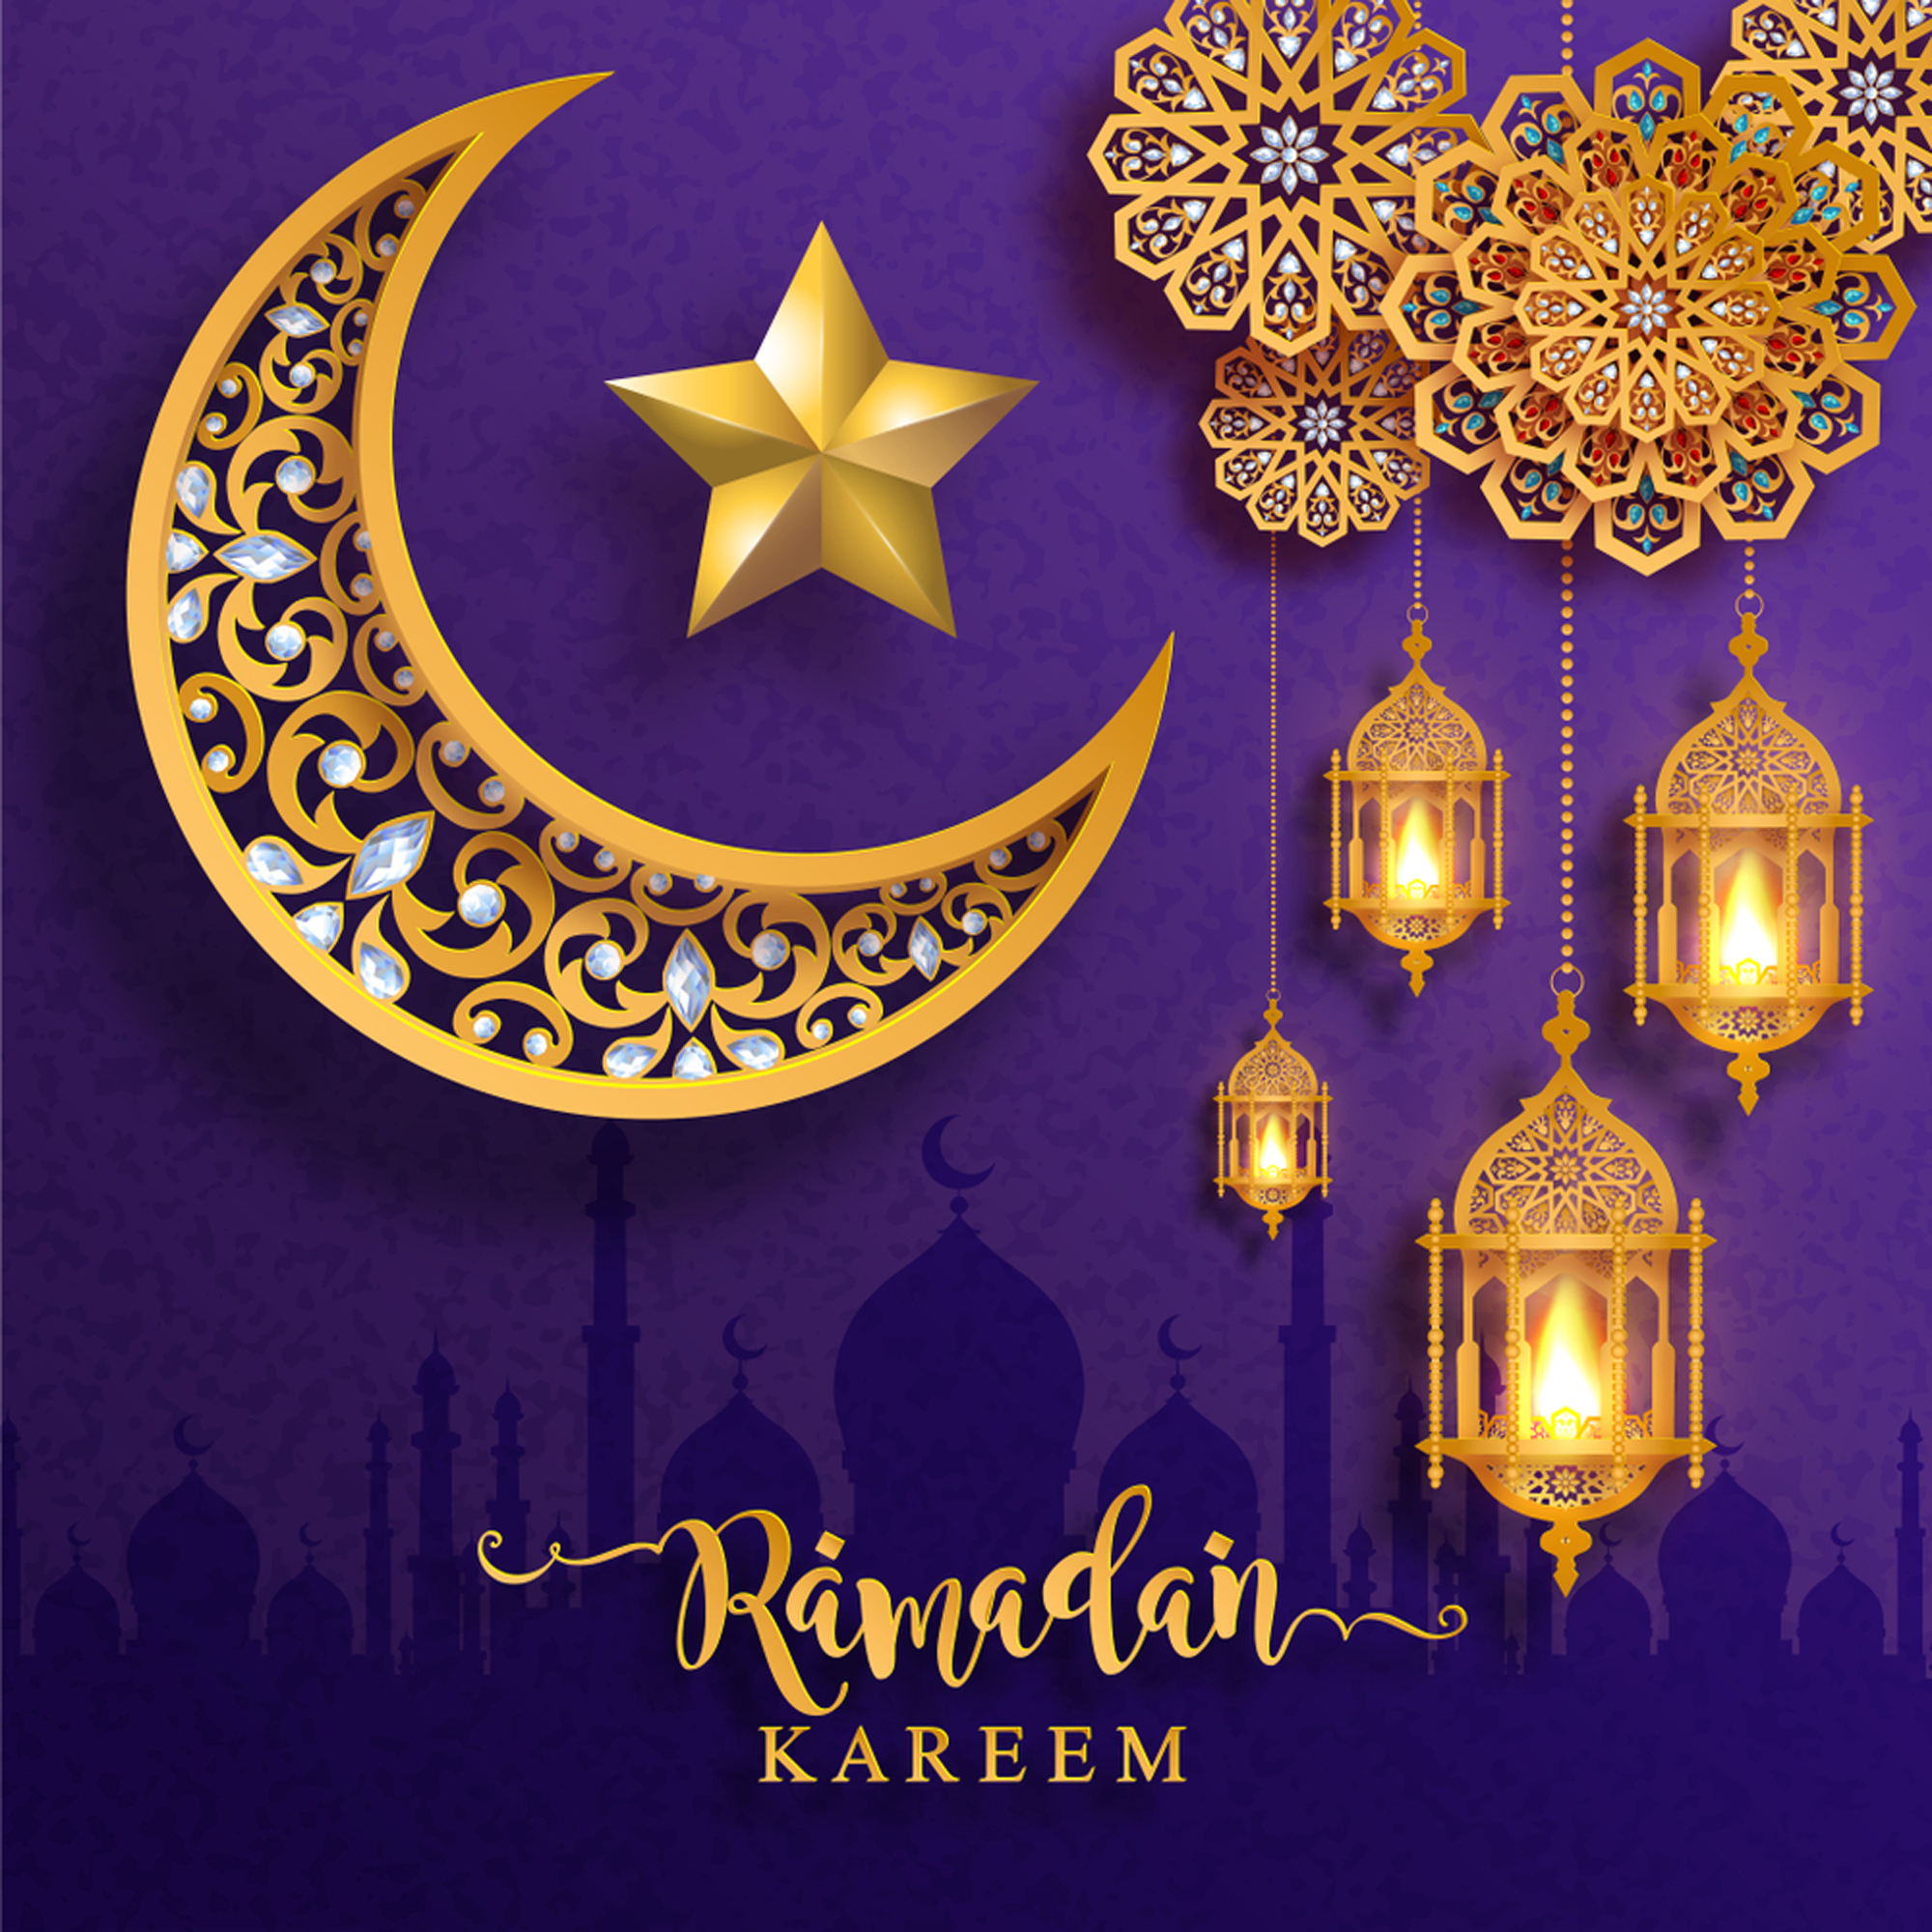 Ramadan Kareem Ramadan Wishes Ramadan Mubarak Wallpapers Ramadan Greetings